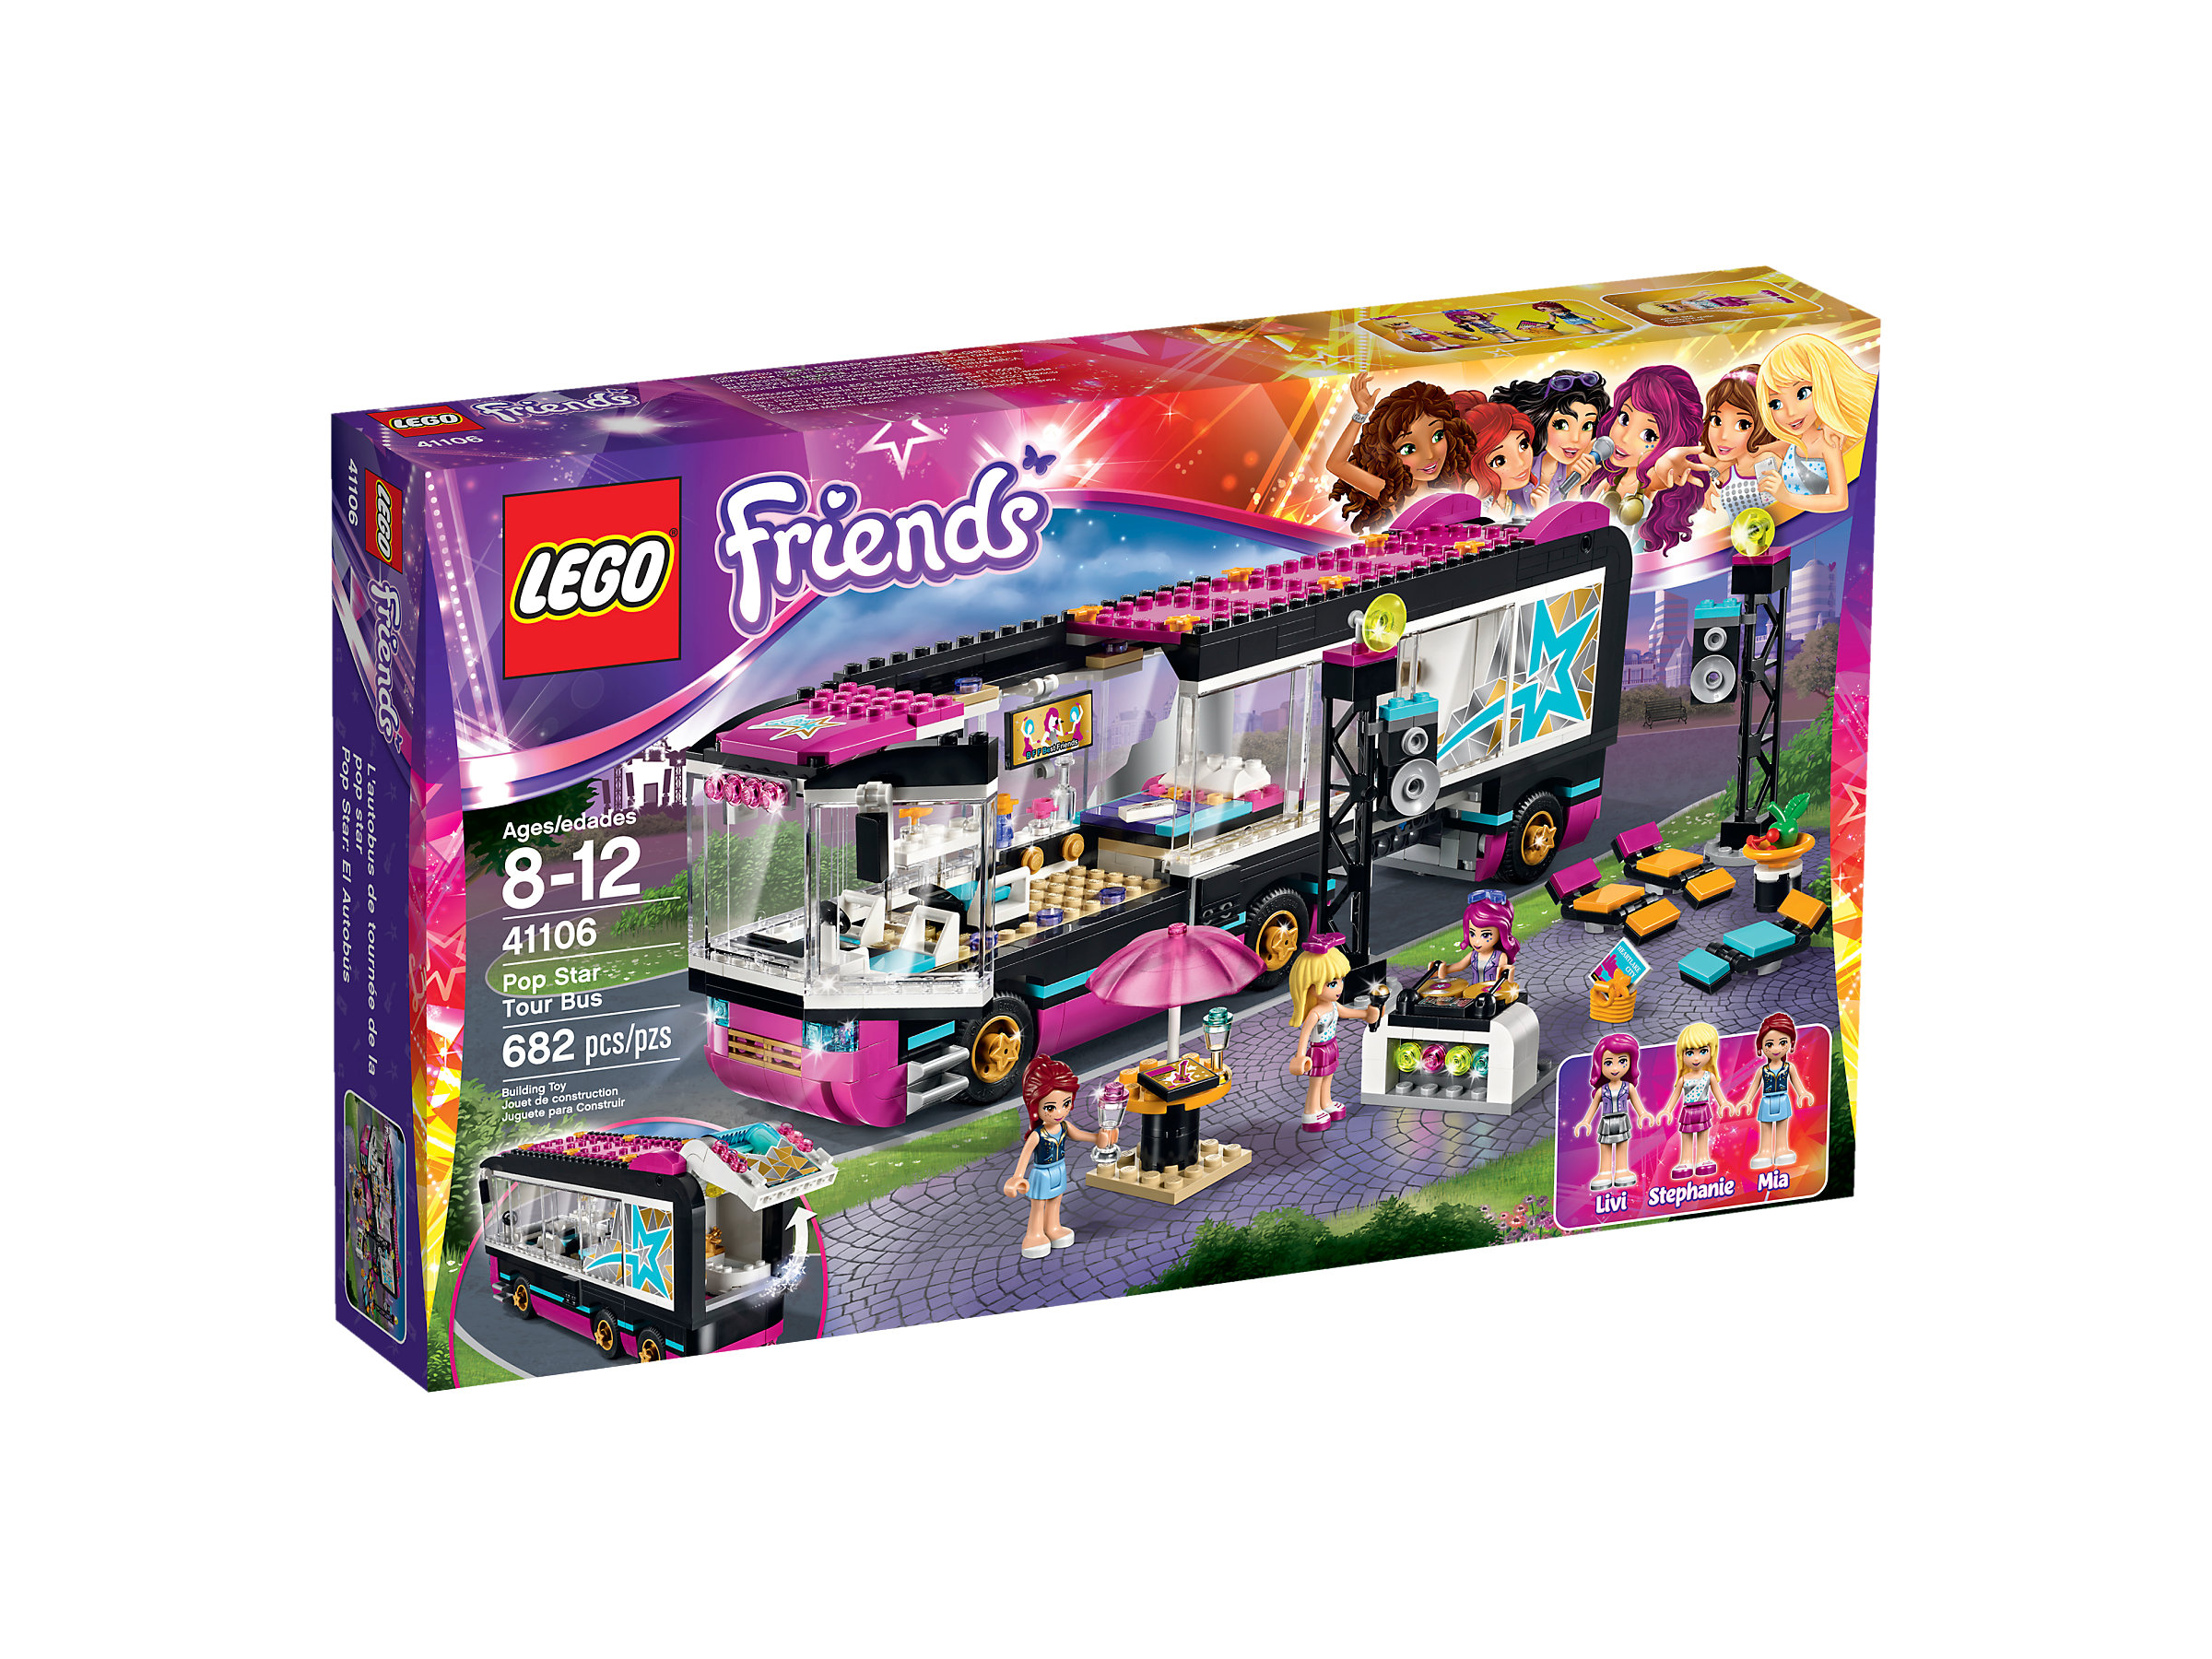 Lego Friends Badezimmer Pop Star Tour Bus 41106 1